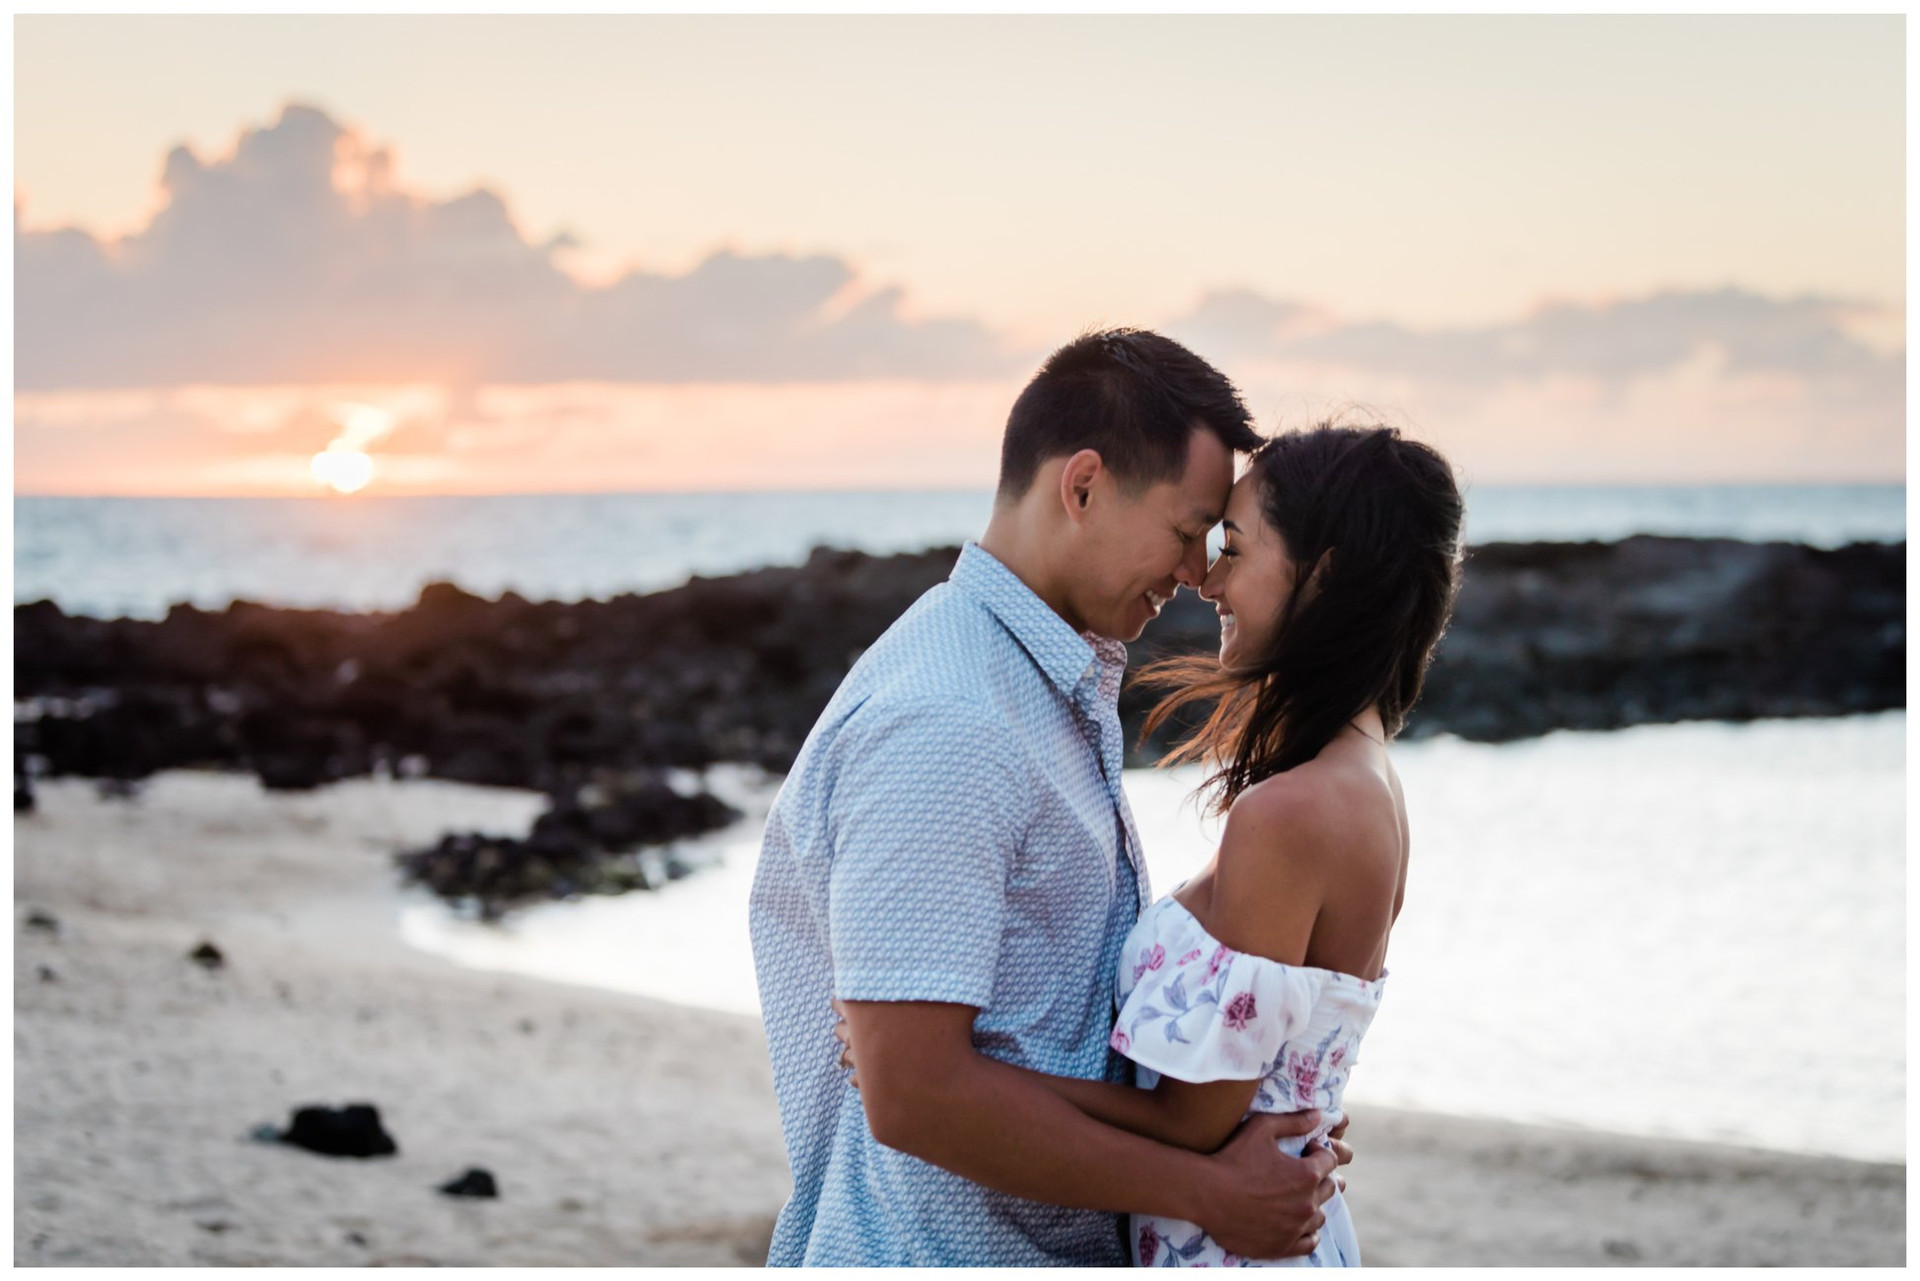 Hawaii Engagment Photographer 4.jpg